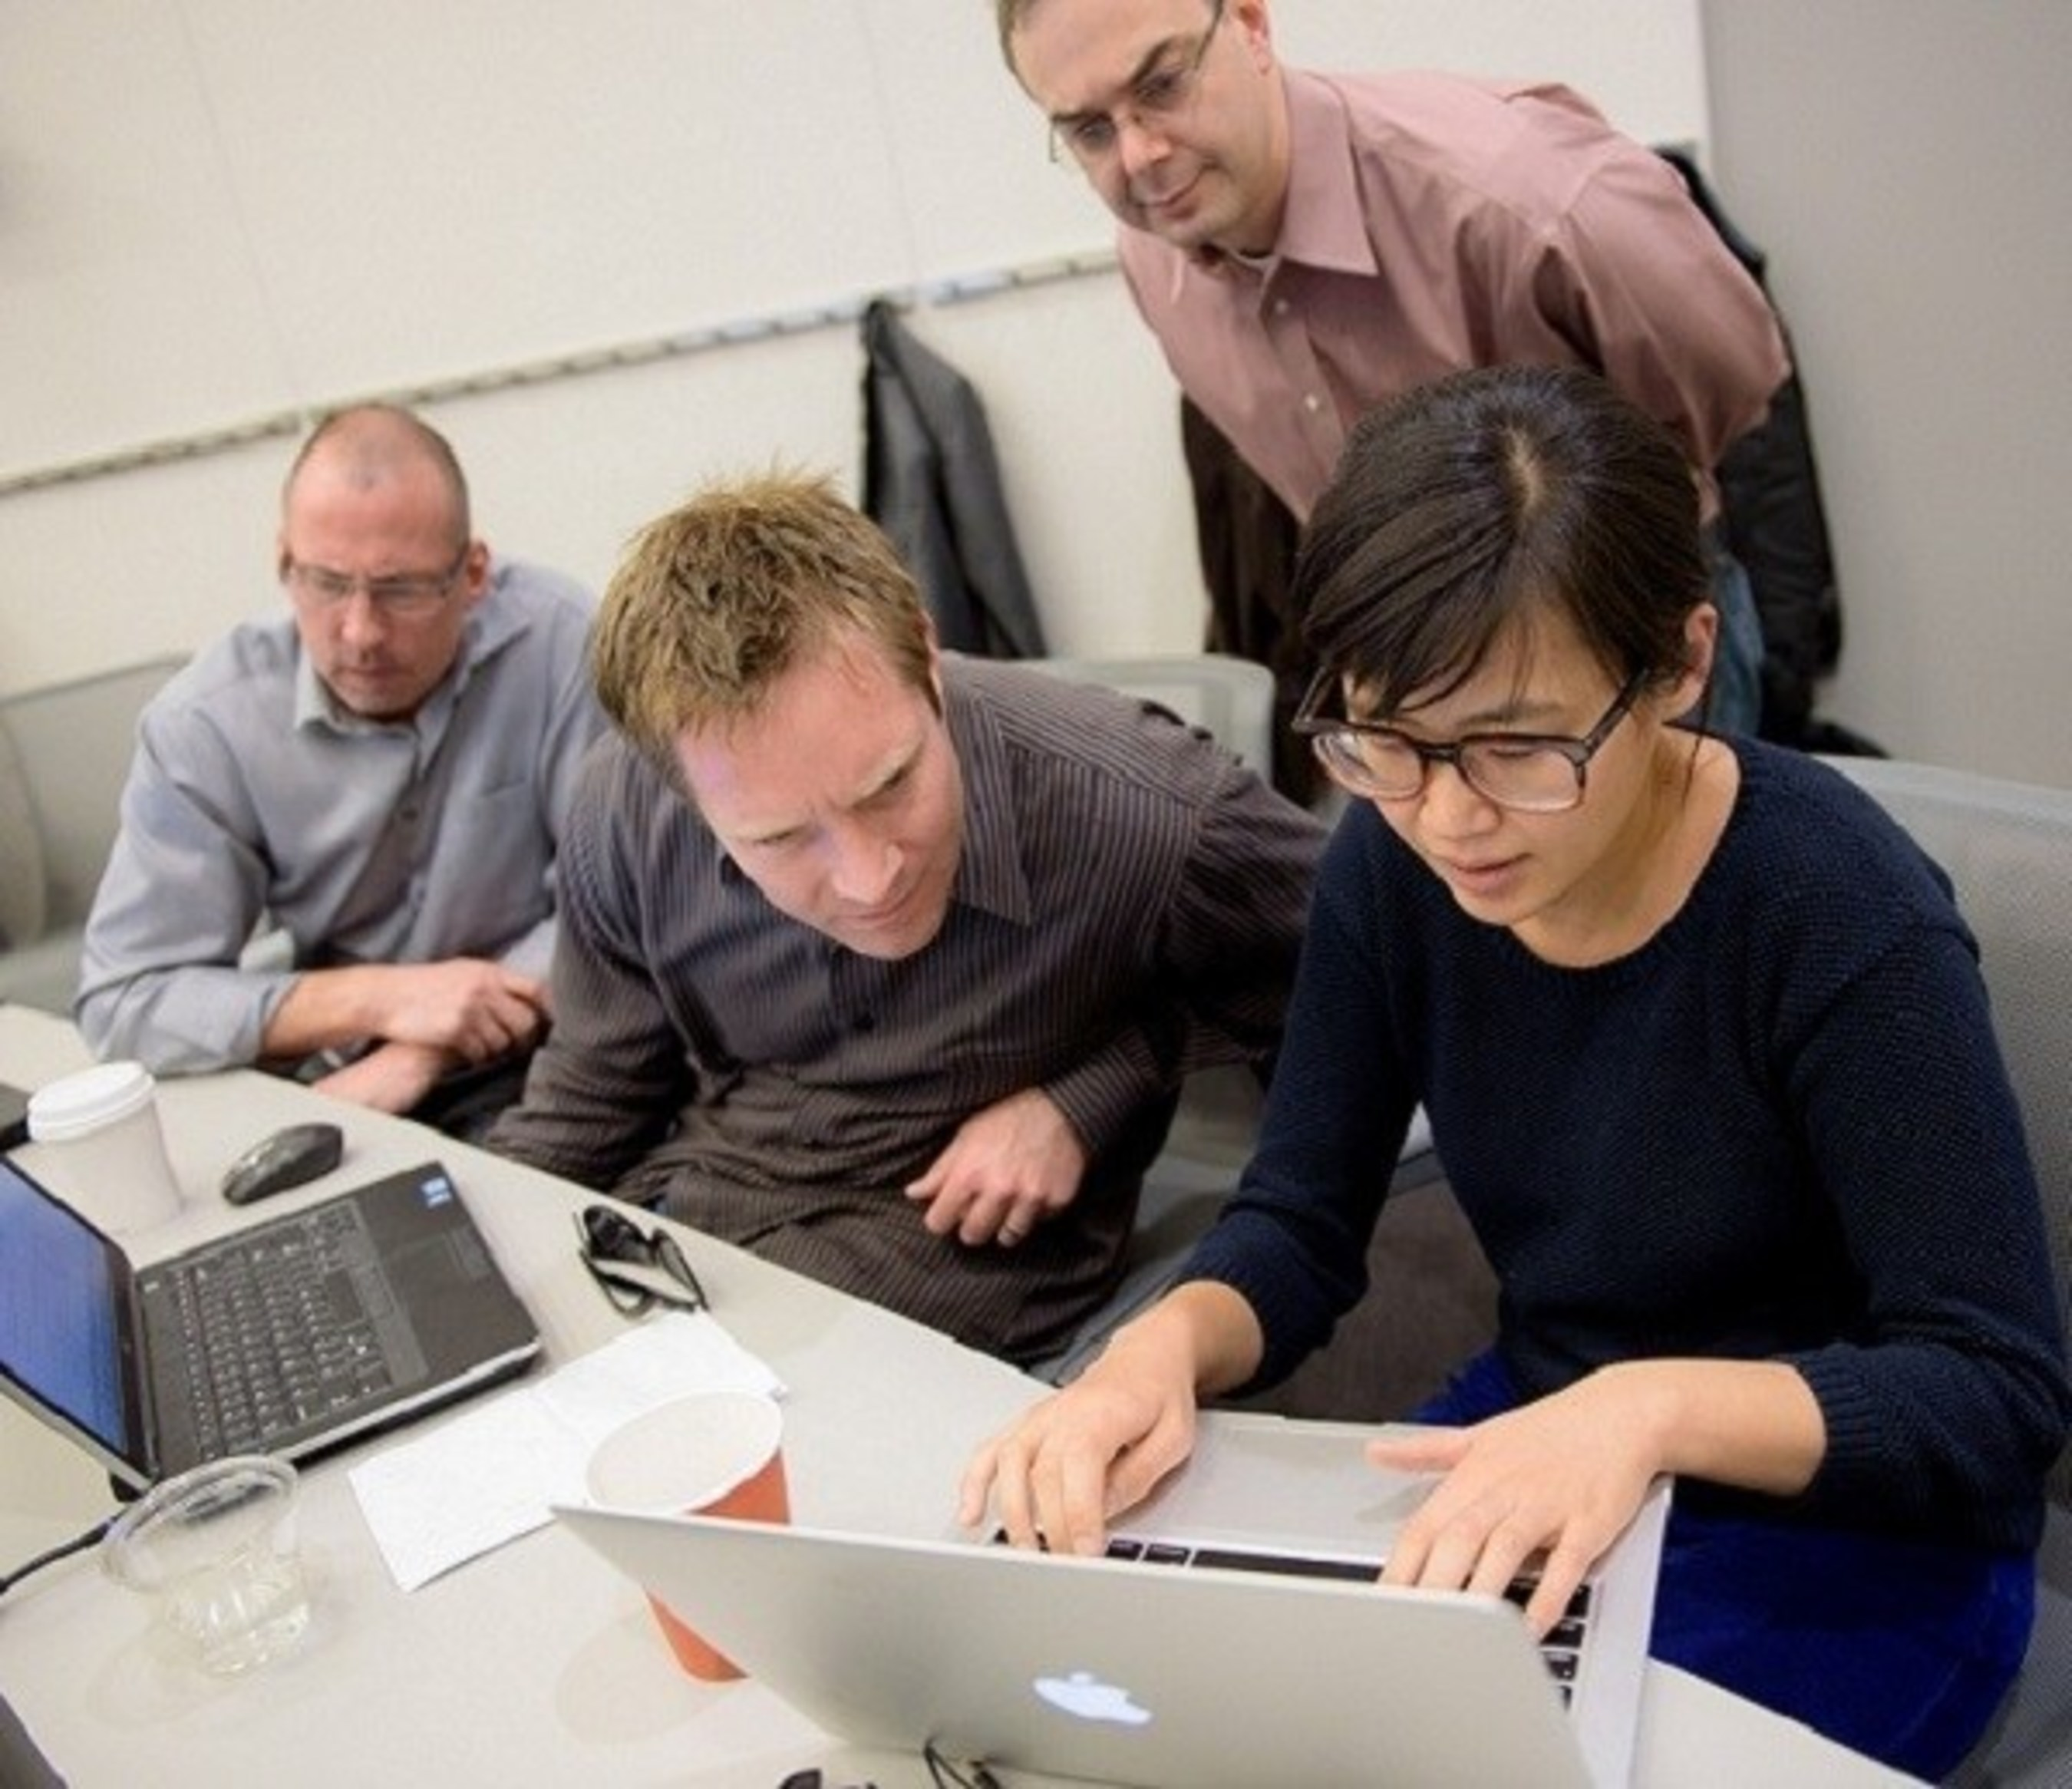 Northwestern University Graduate Students Take on Big Data Using Teradata Aster Discovery Platform in Hackathon